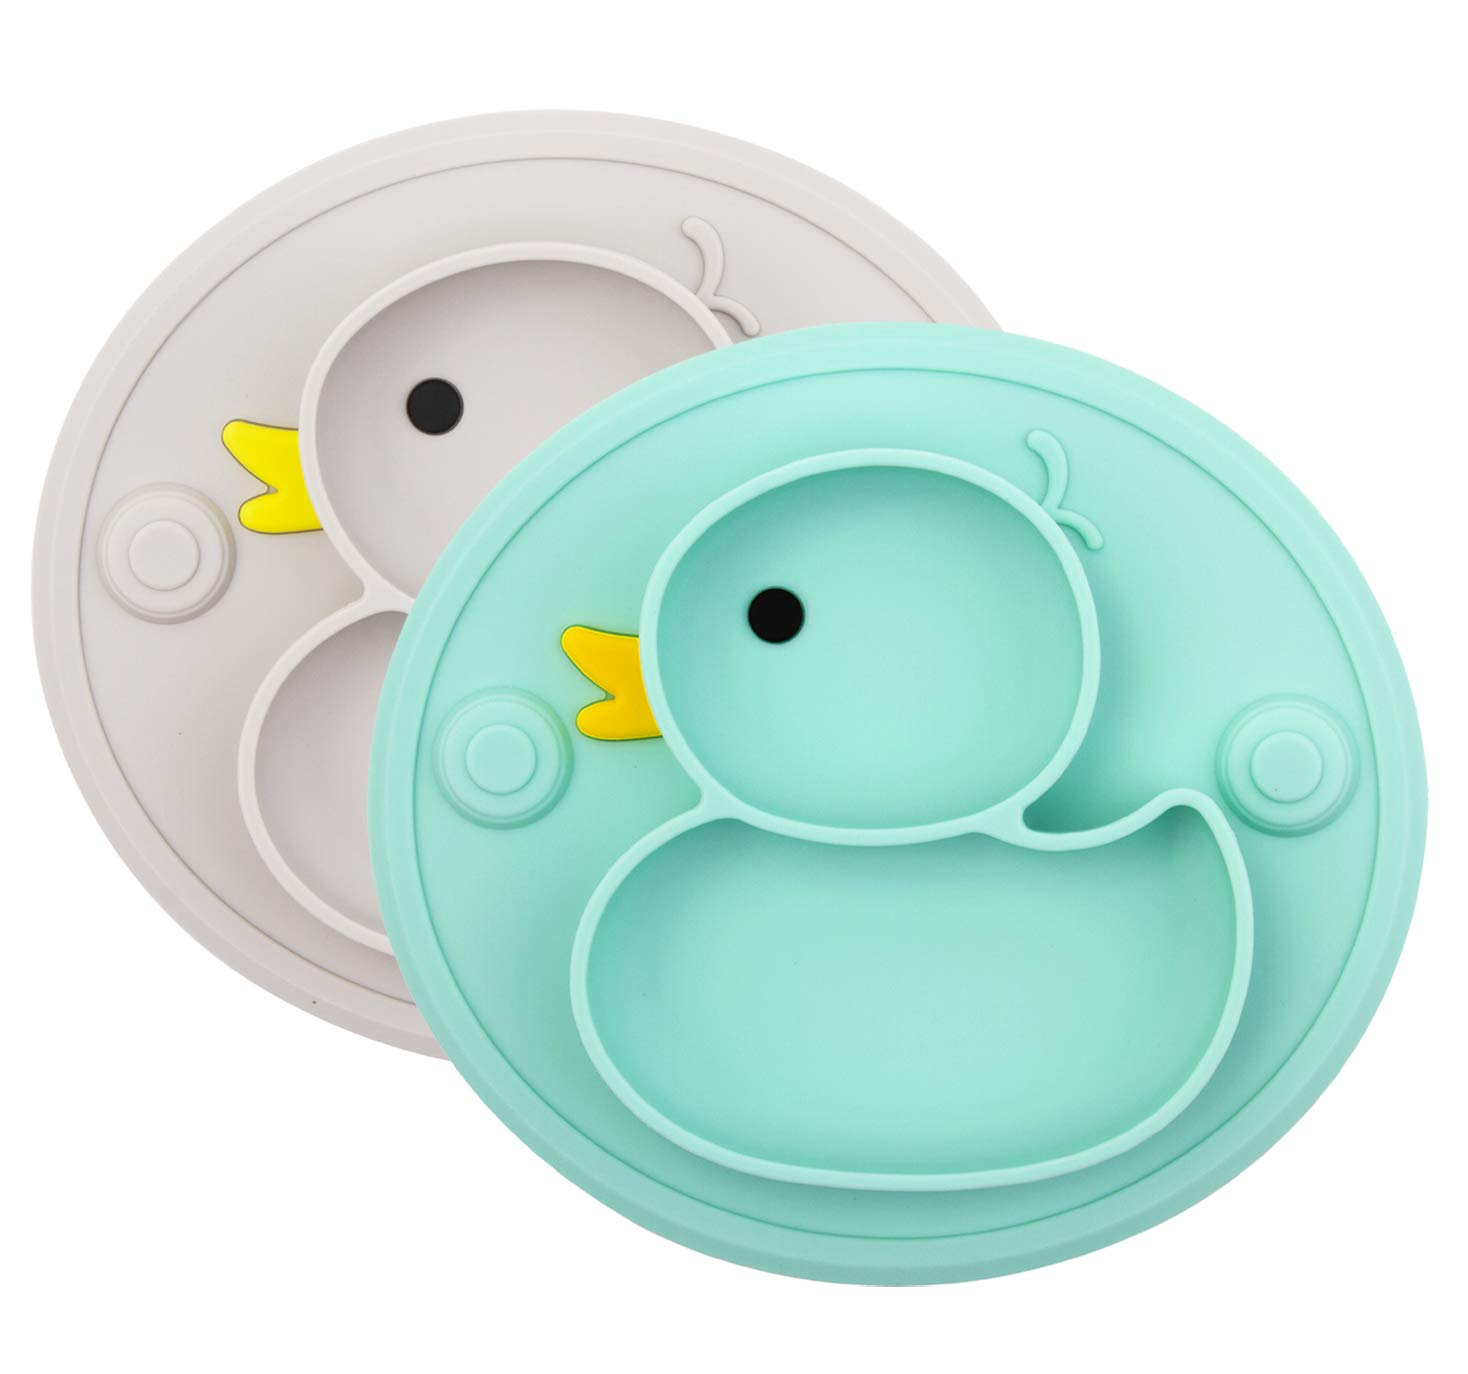 Silicone Divided Toddler Plates - Portable Non Slip Suction Plates for Children Babies and Kids BPA Free Baby Dinner Plate (Duck-Cyan/Gray)